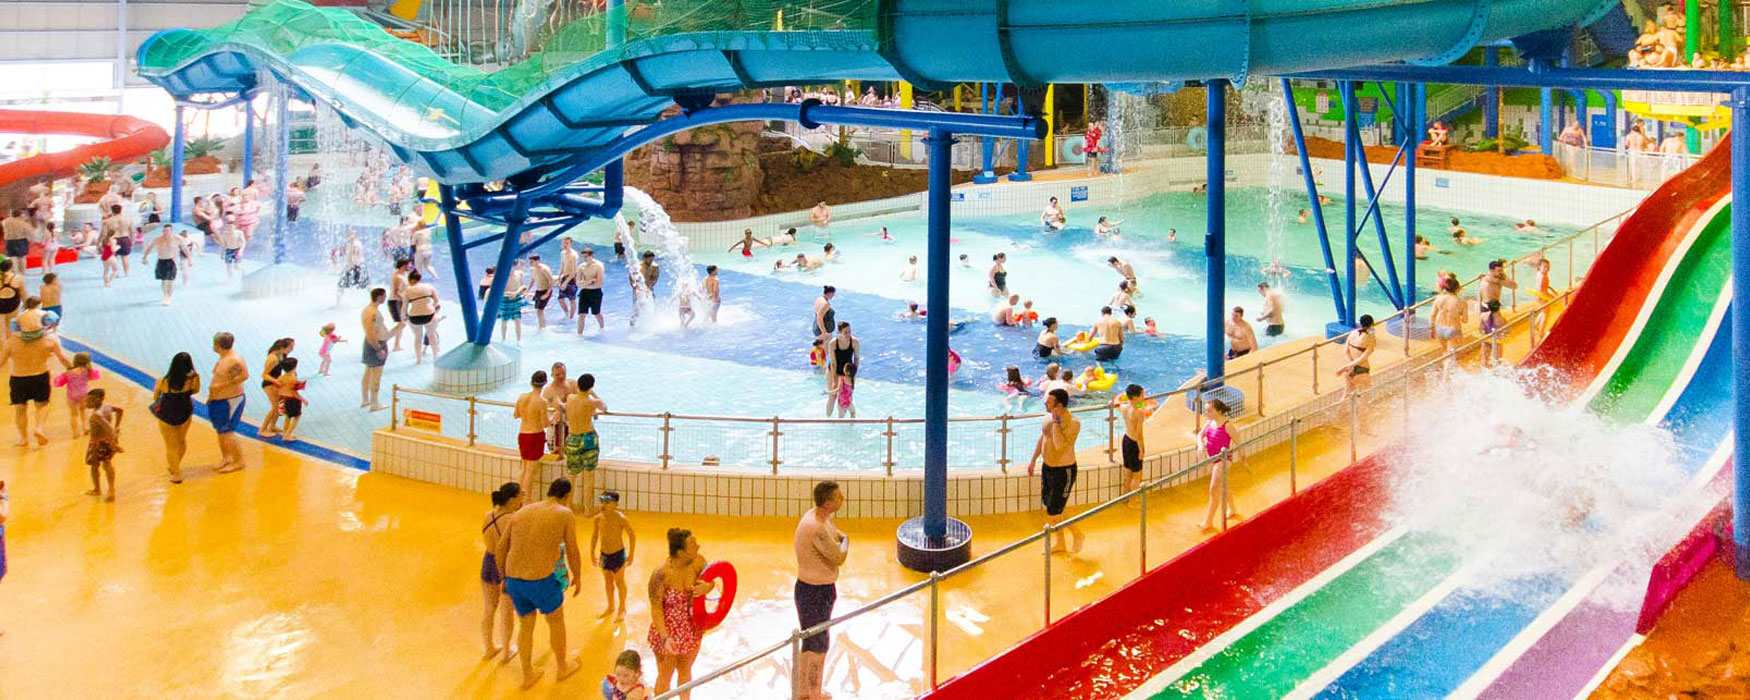 Best uk theme parks enjoy staffordshire - Swimming pools with waterslides in london ...